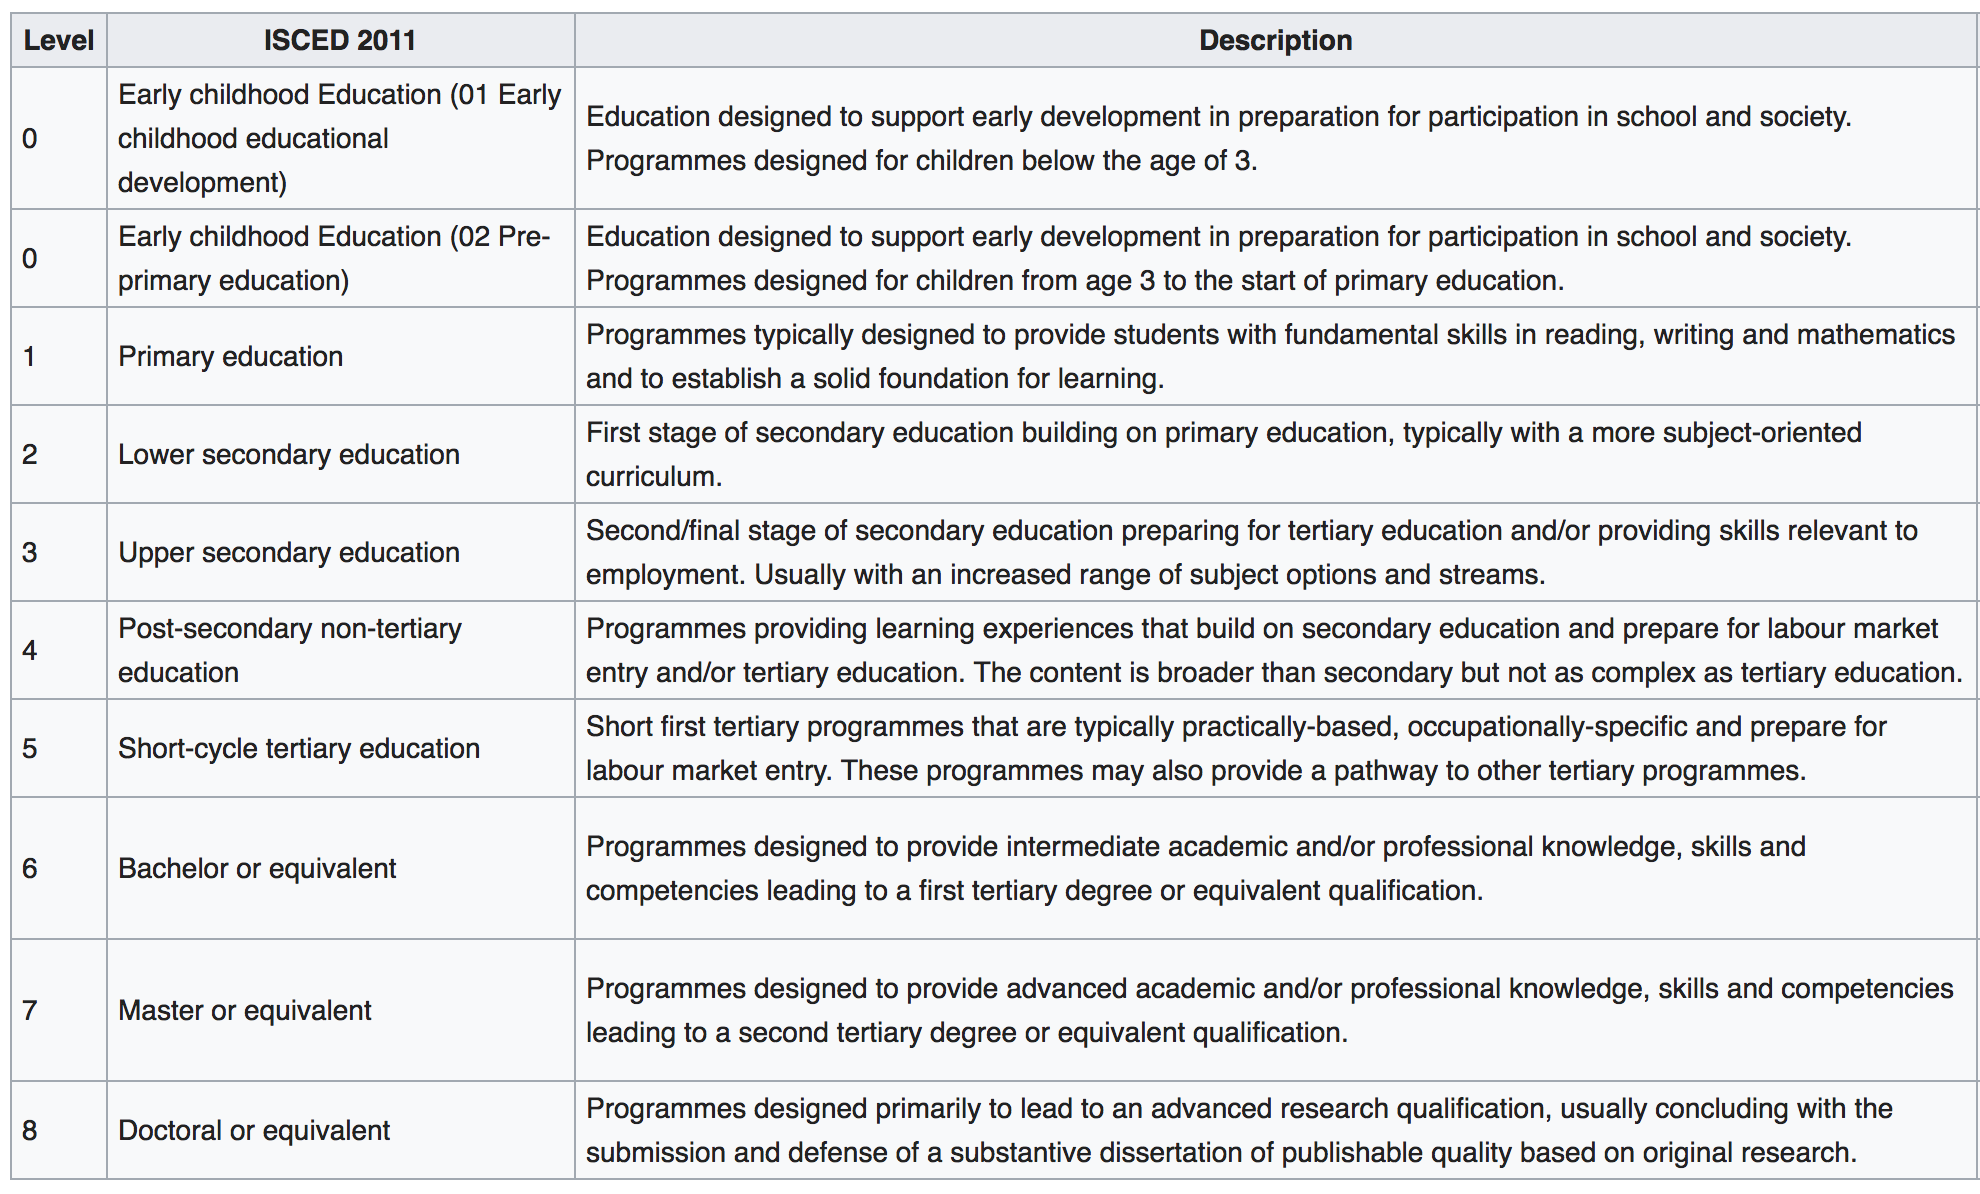 Measuring education: What data is available? - Our World in Data